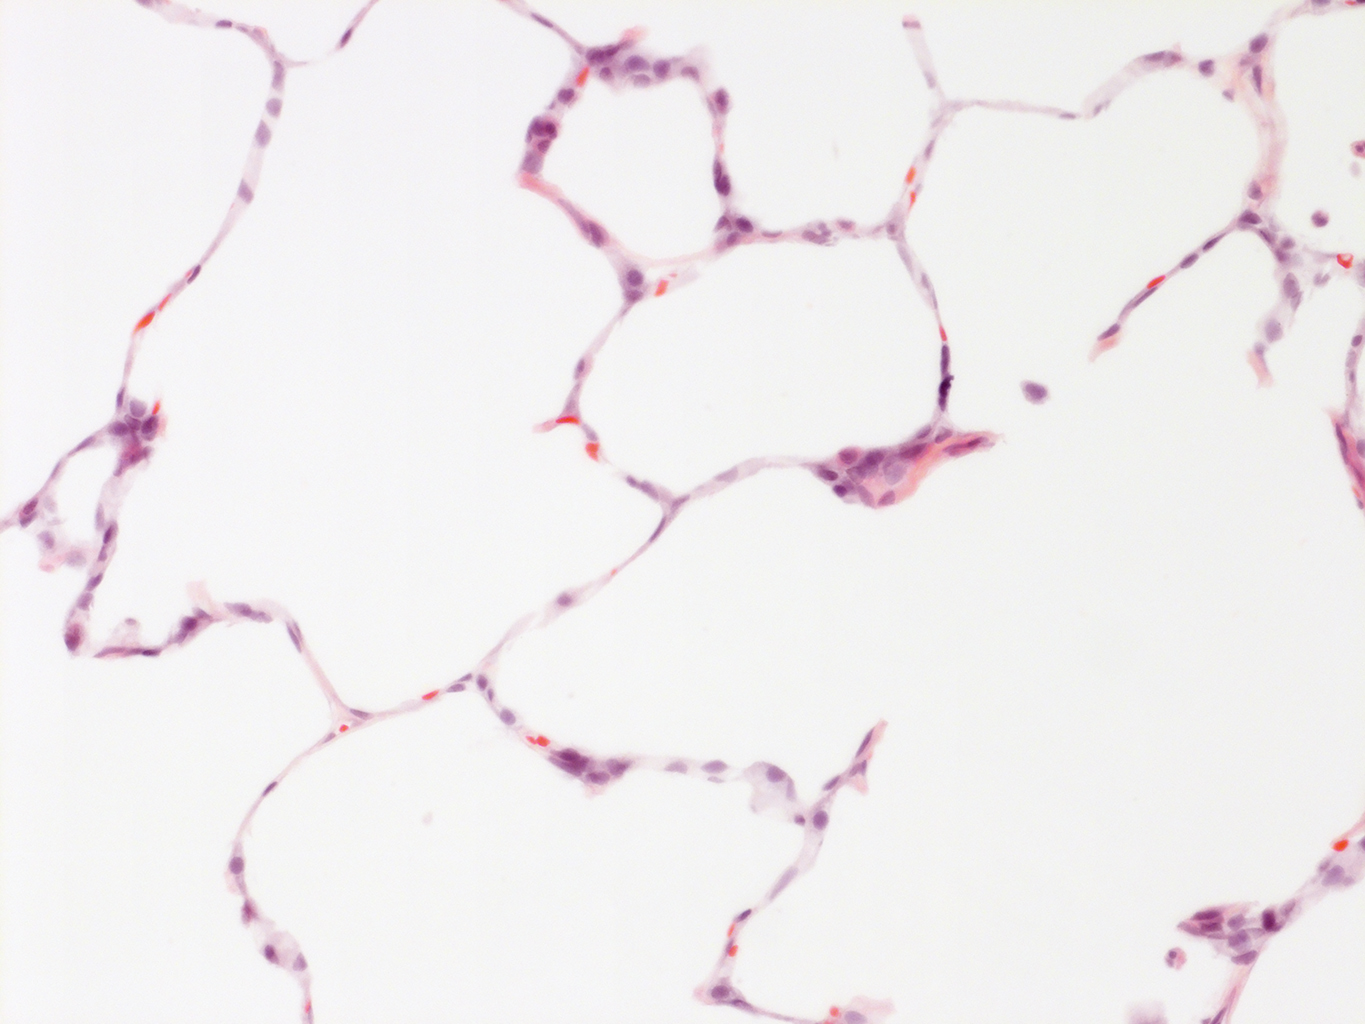 H&E Staining of 14 Month-Old Human Lung from Donor D072-RLL-15B3